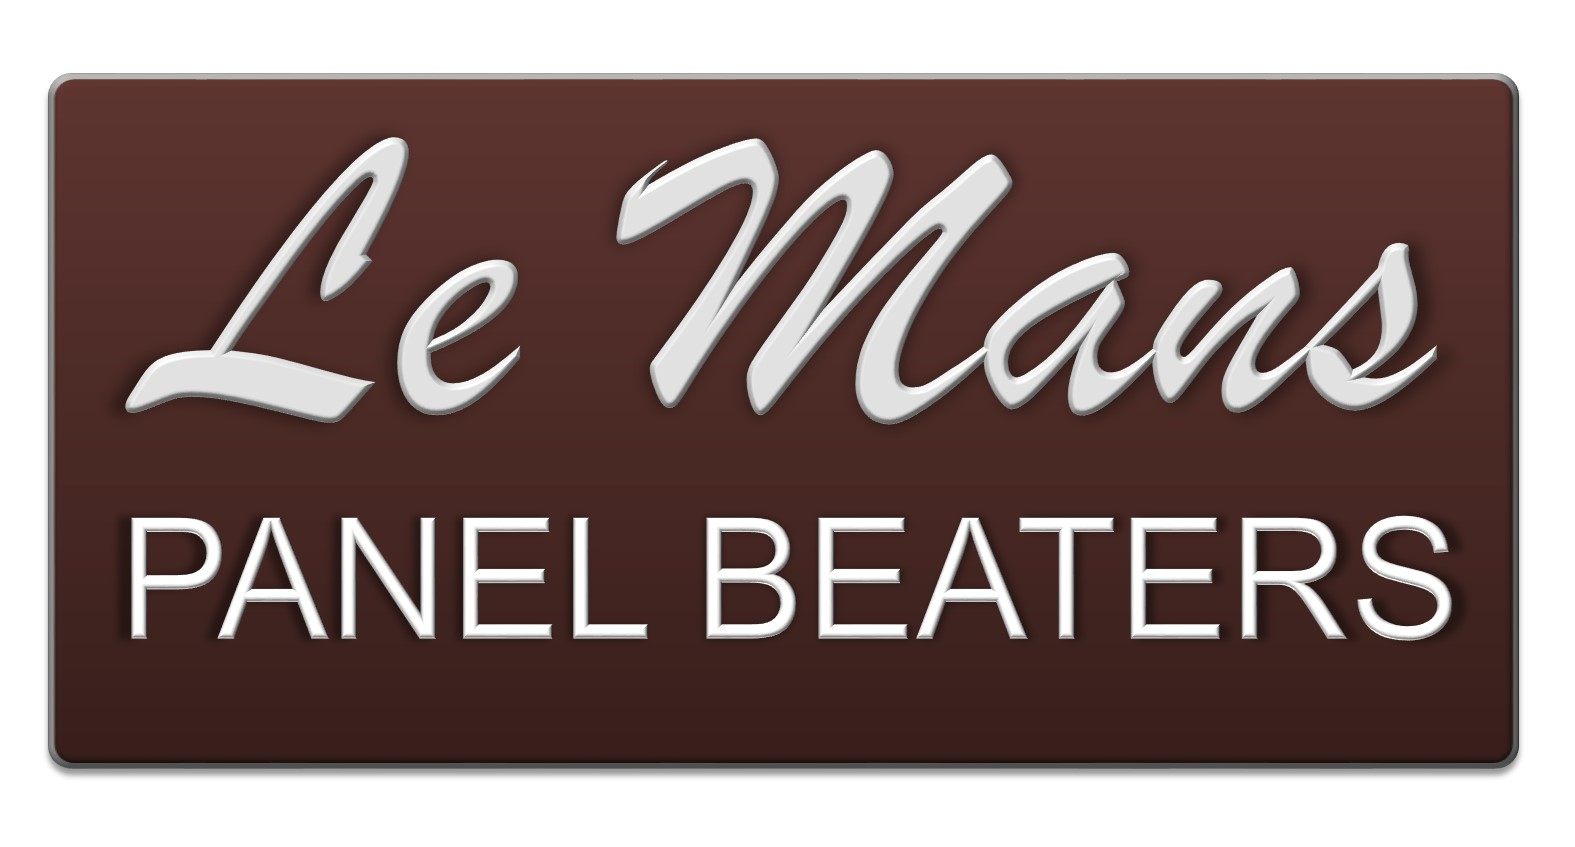 Logo of Le Mans Panelbeaters